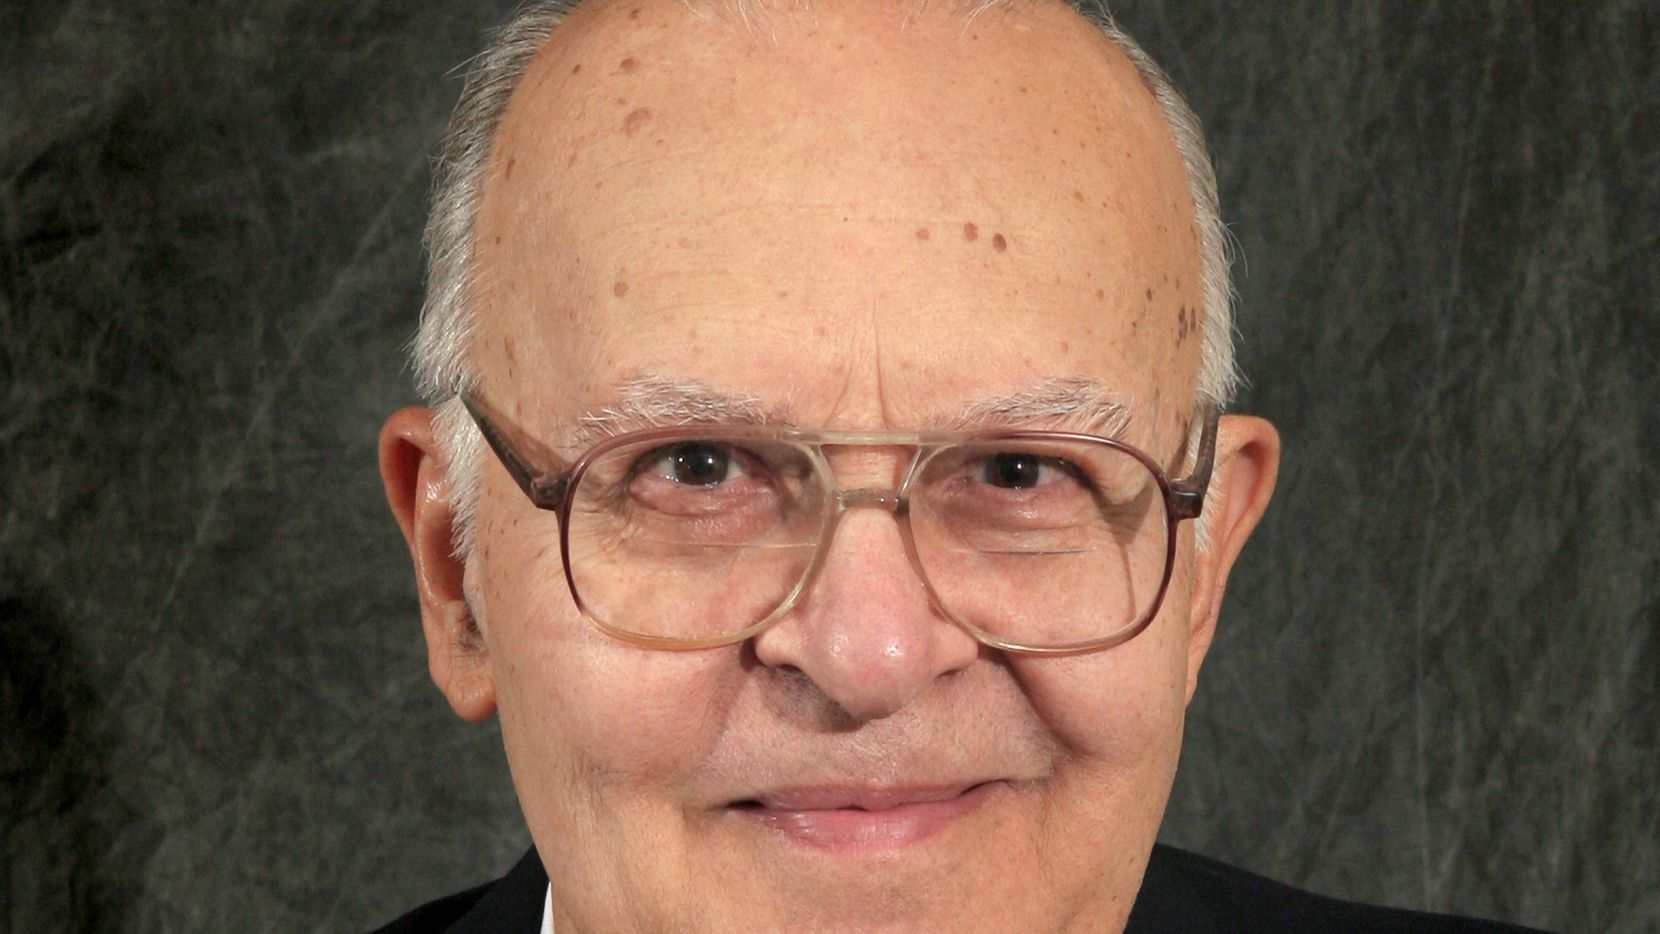 James Leo Garrett Jr., a beloved and renowned theologian, who died Feb. 5, 2020, in Nacogdoches at age 94.